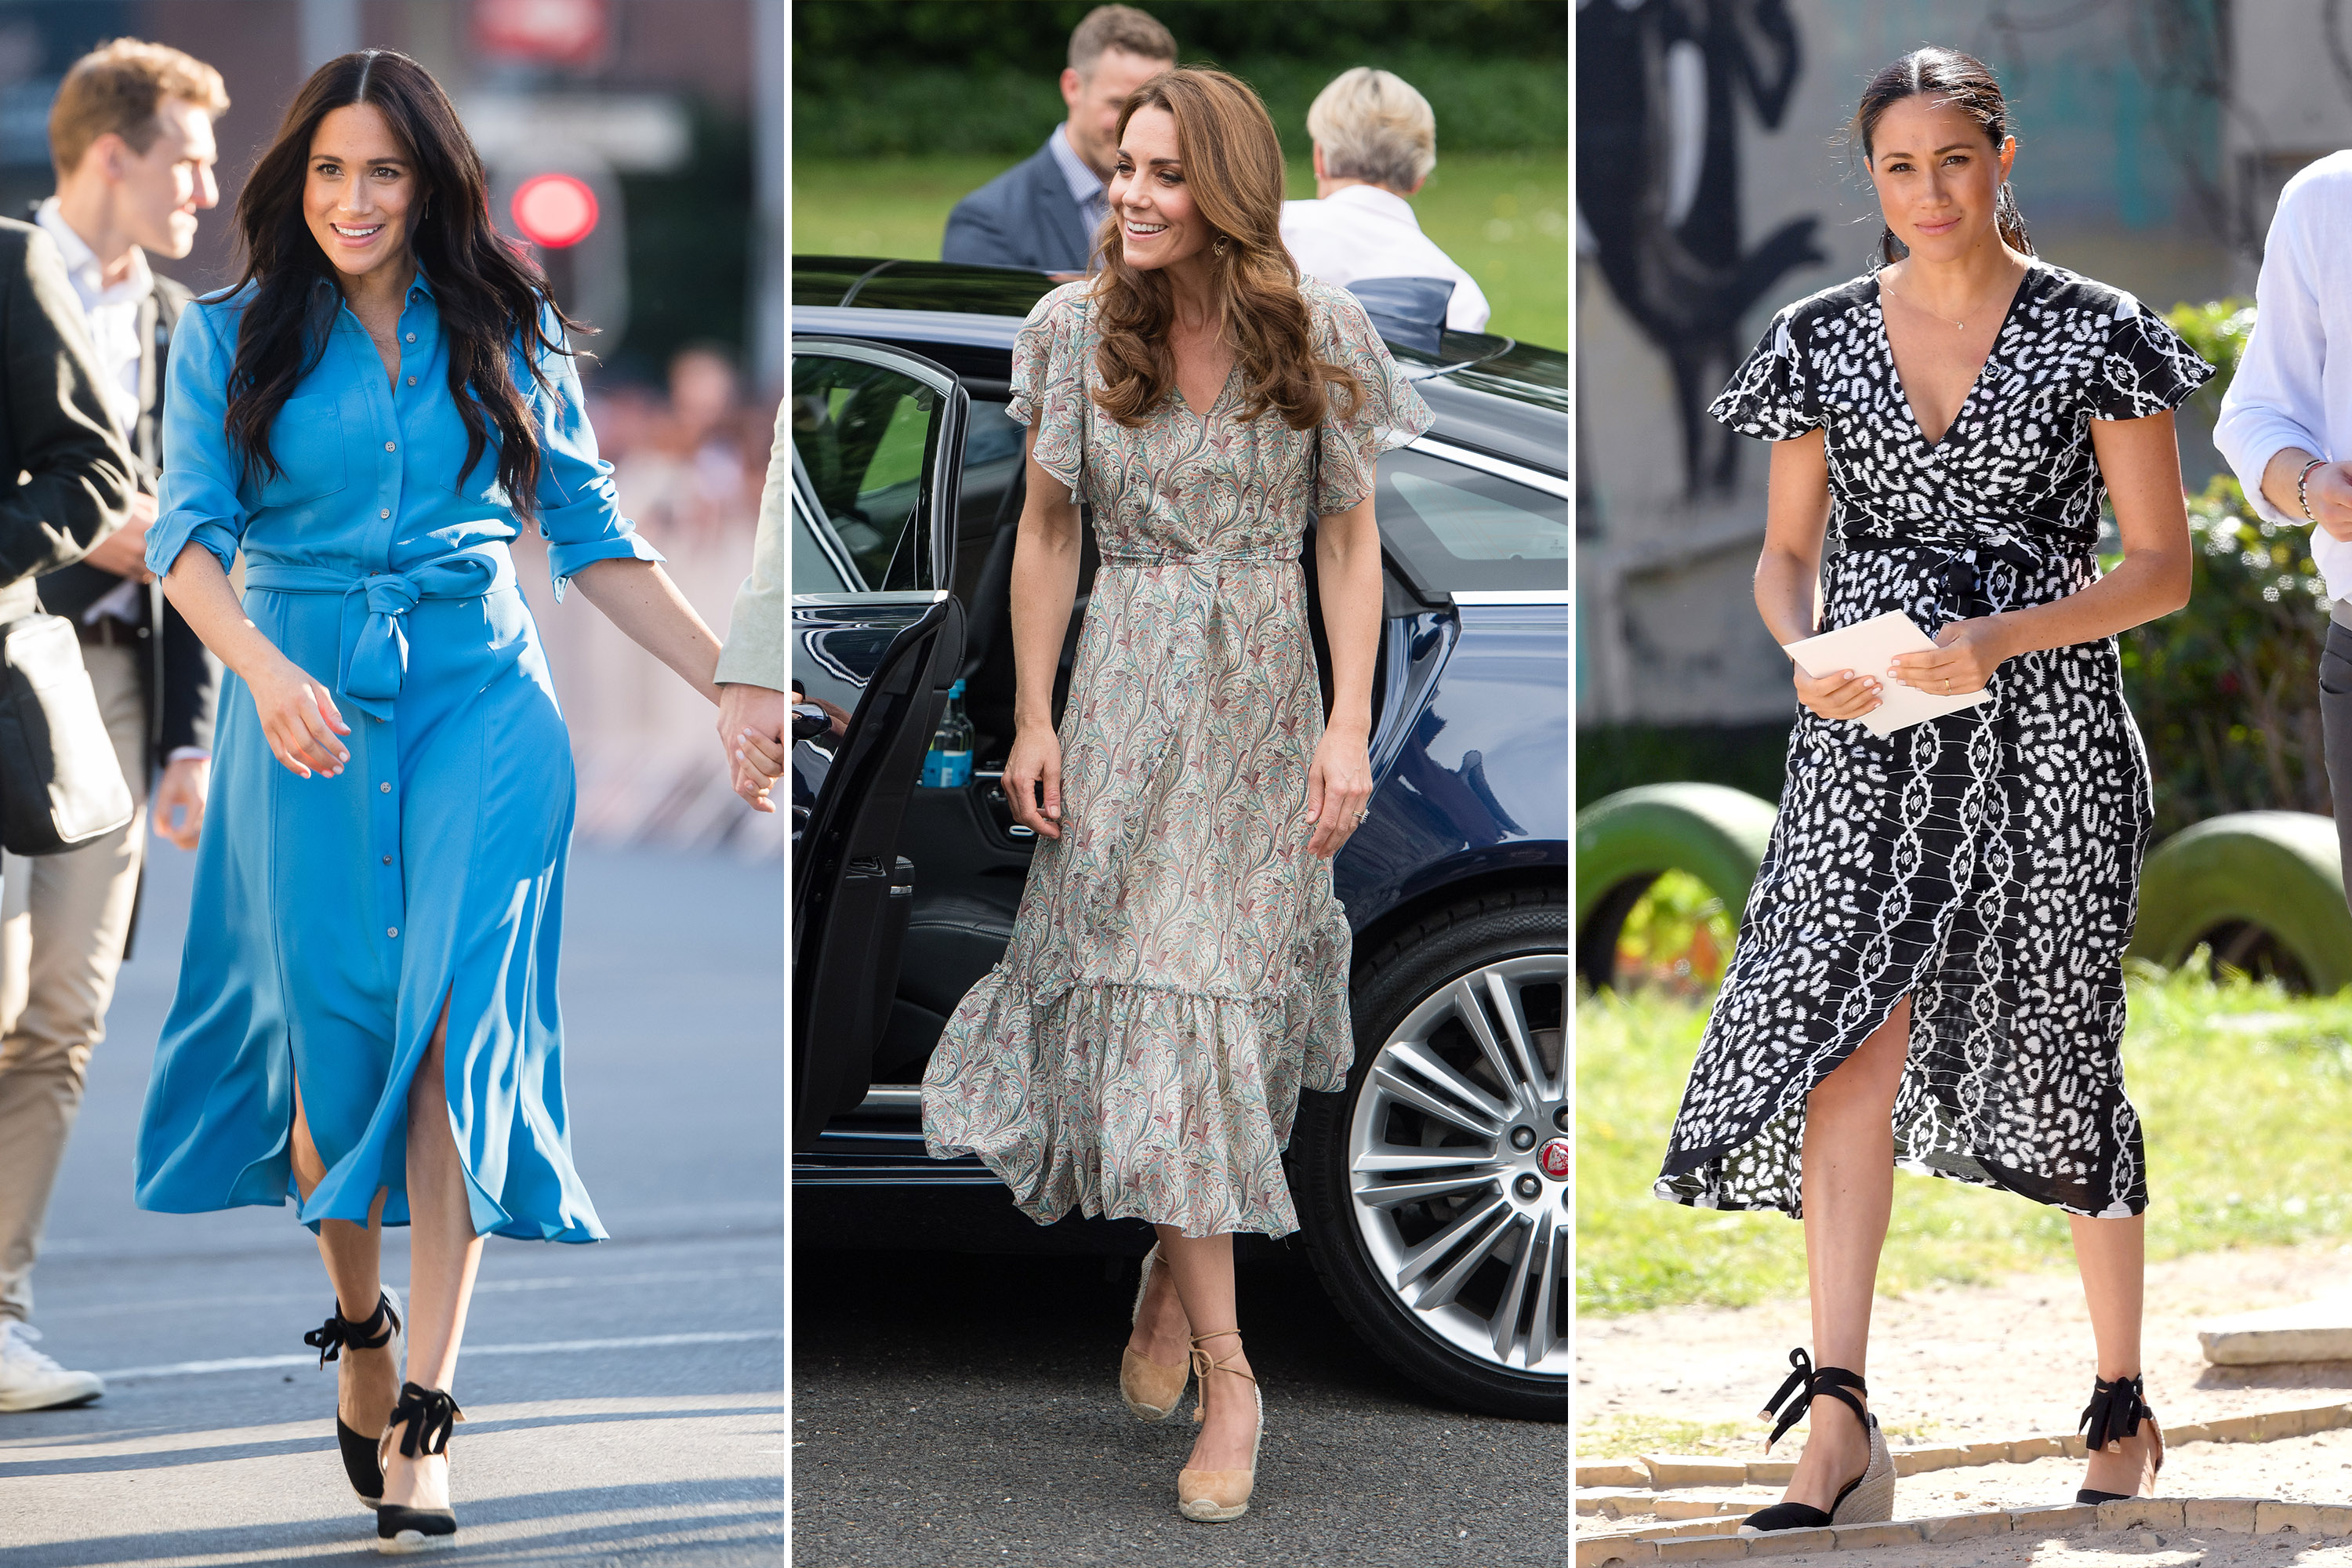 Kate Middleton and Meghan Markle's